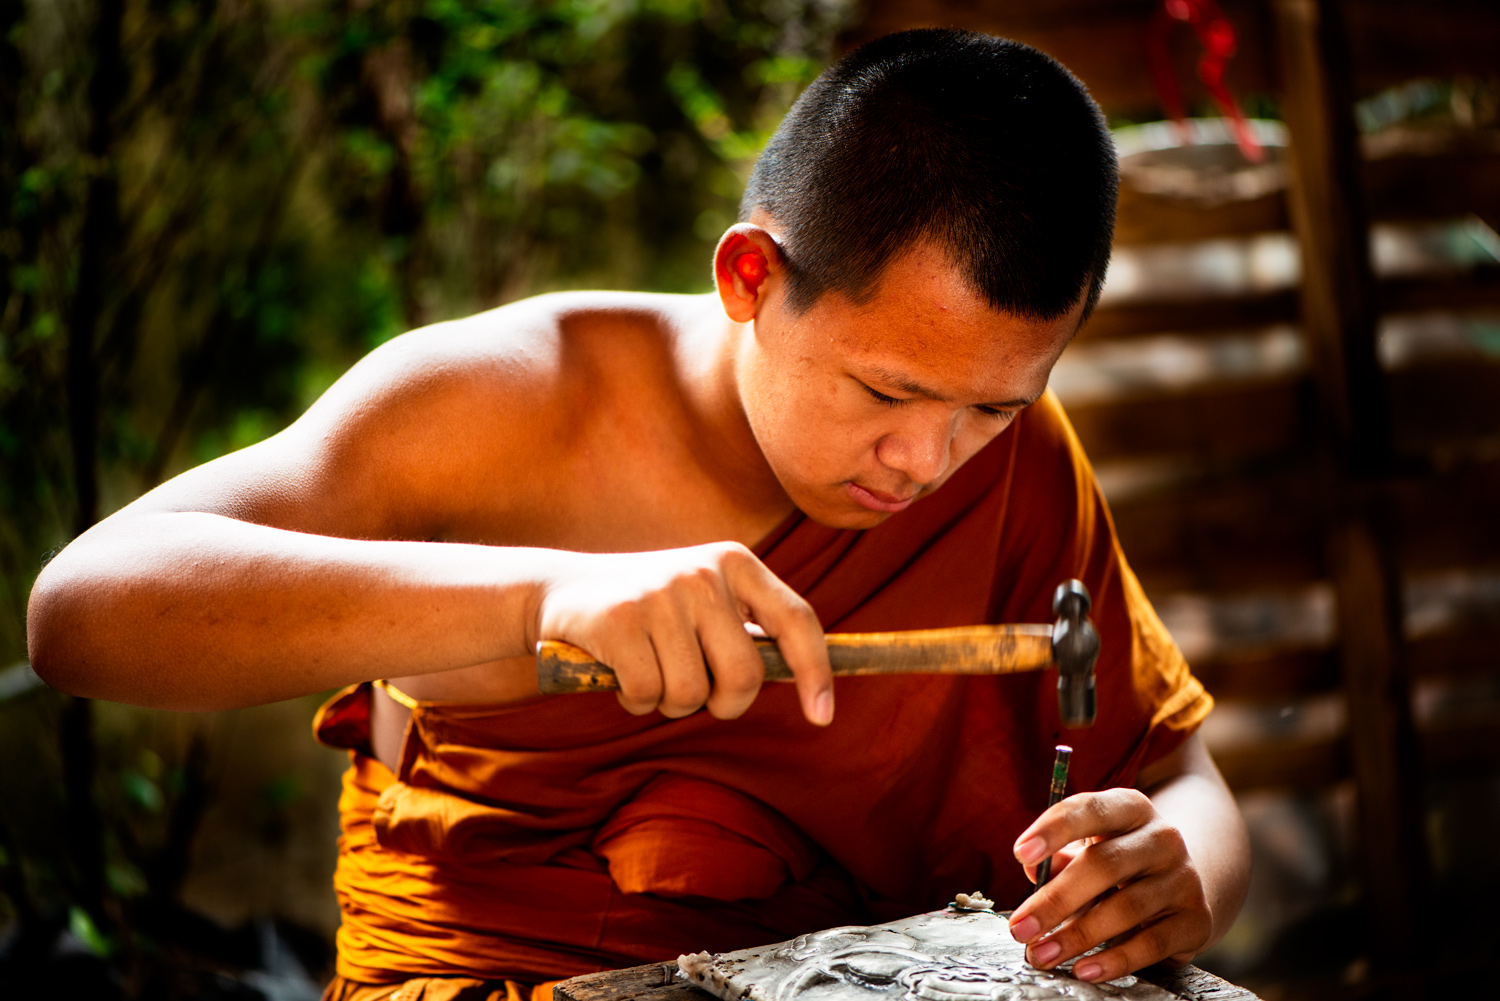 Buddhist monk making art - Tips for Culling Your Photos